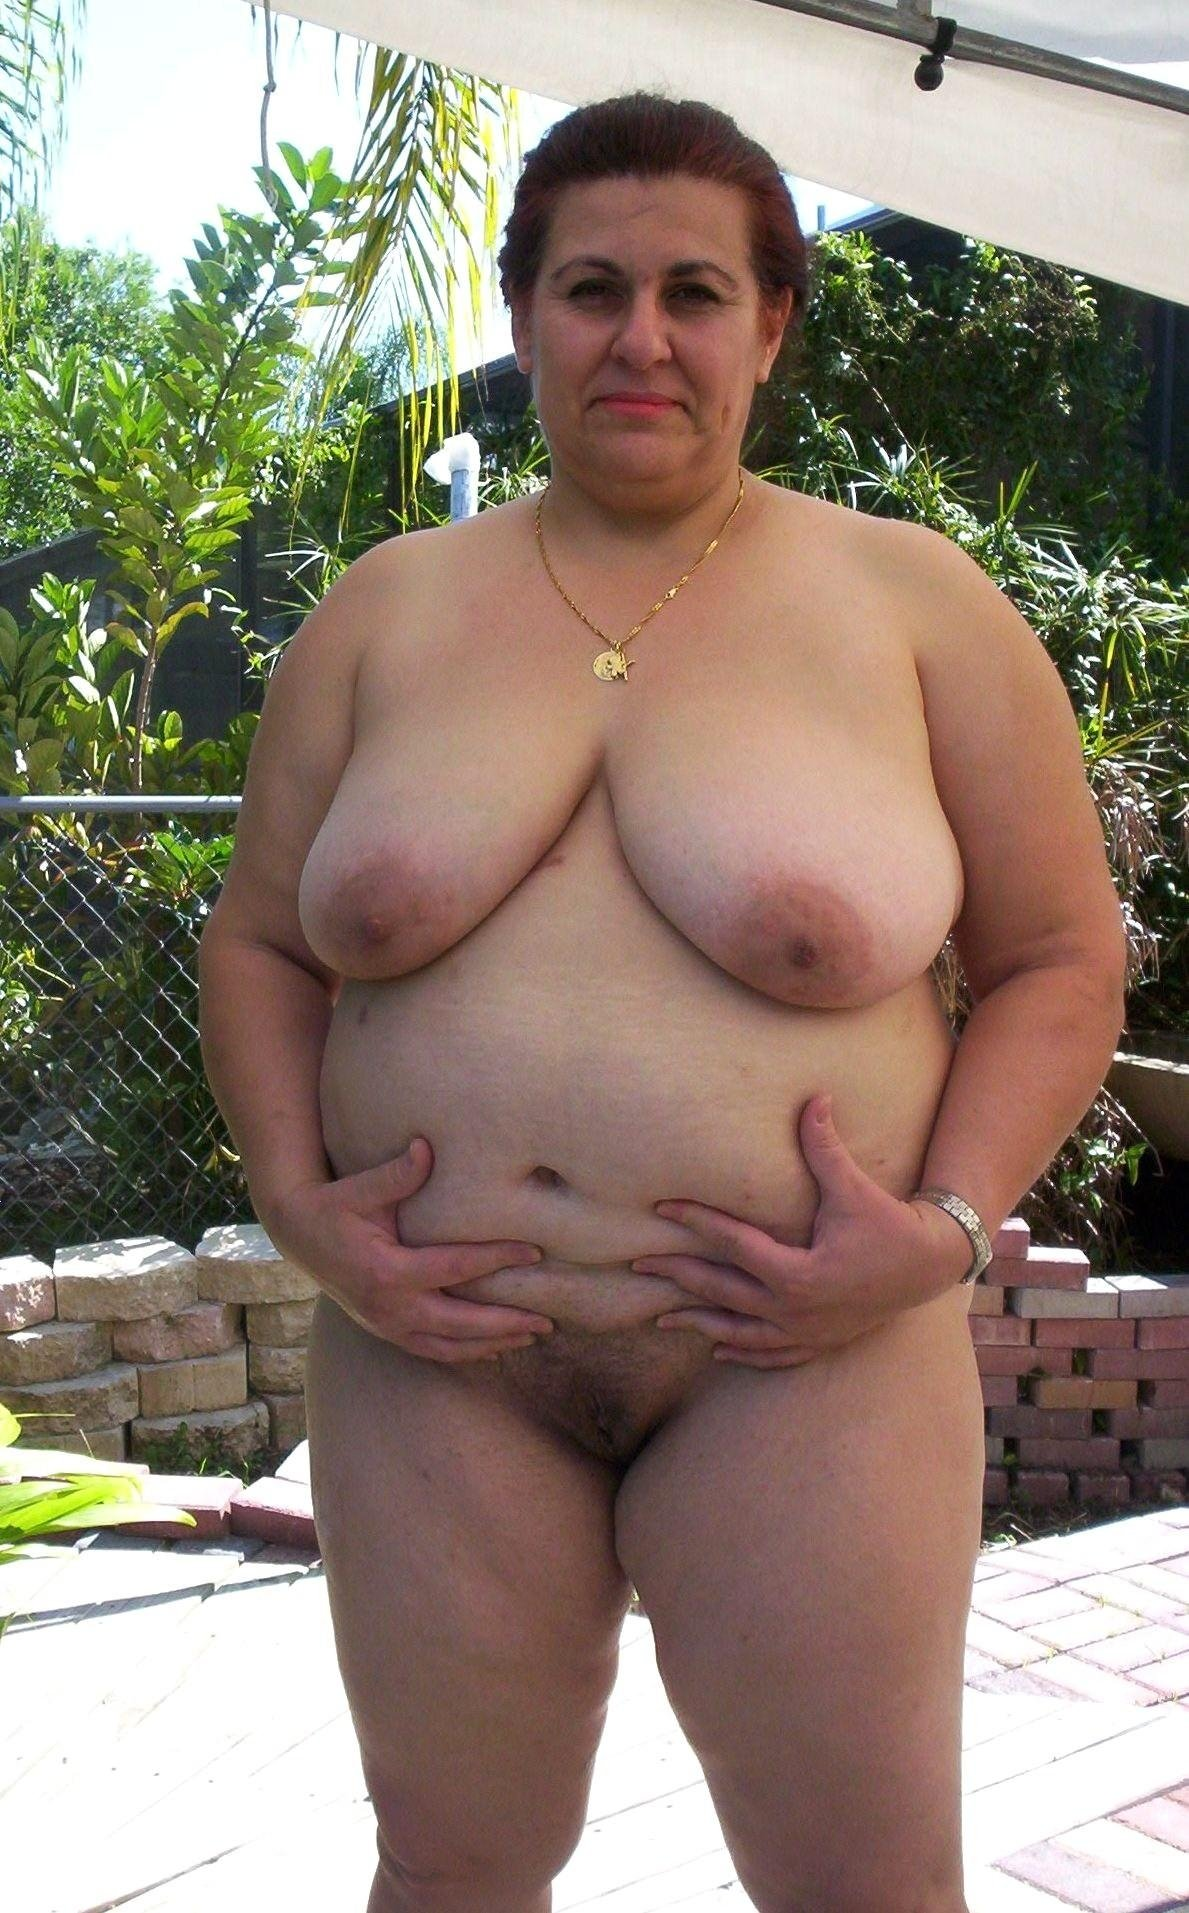 He share his sister with friends Amateur nud